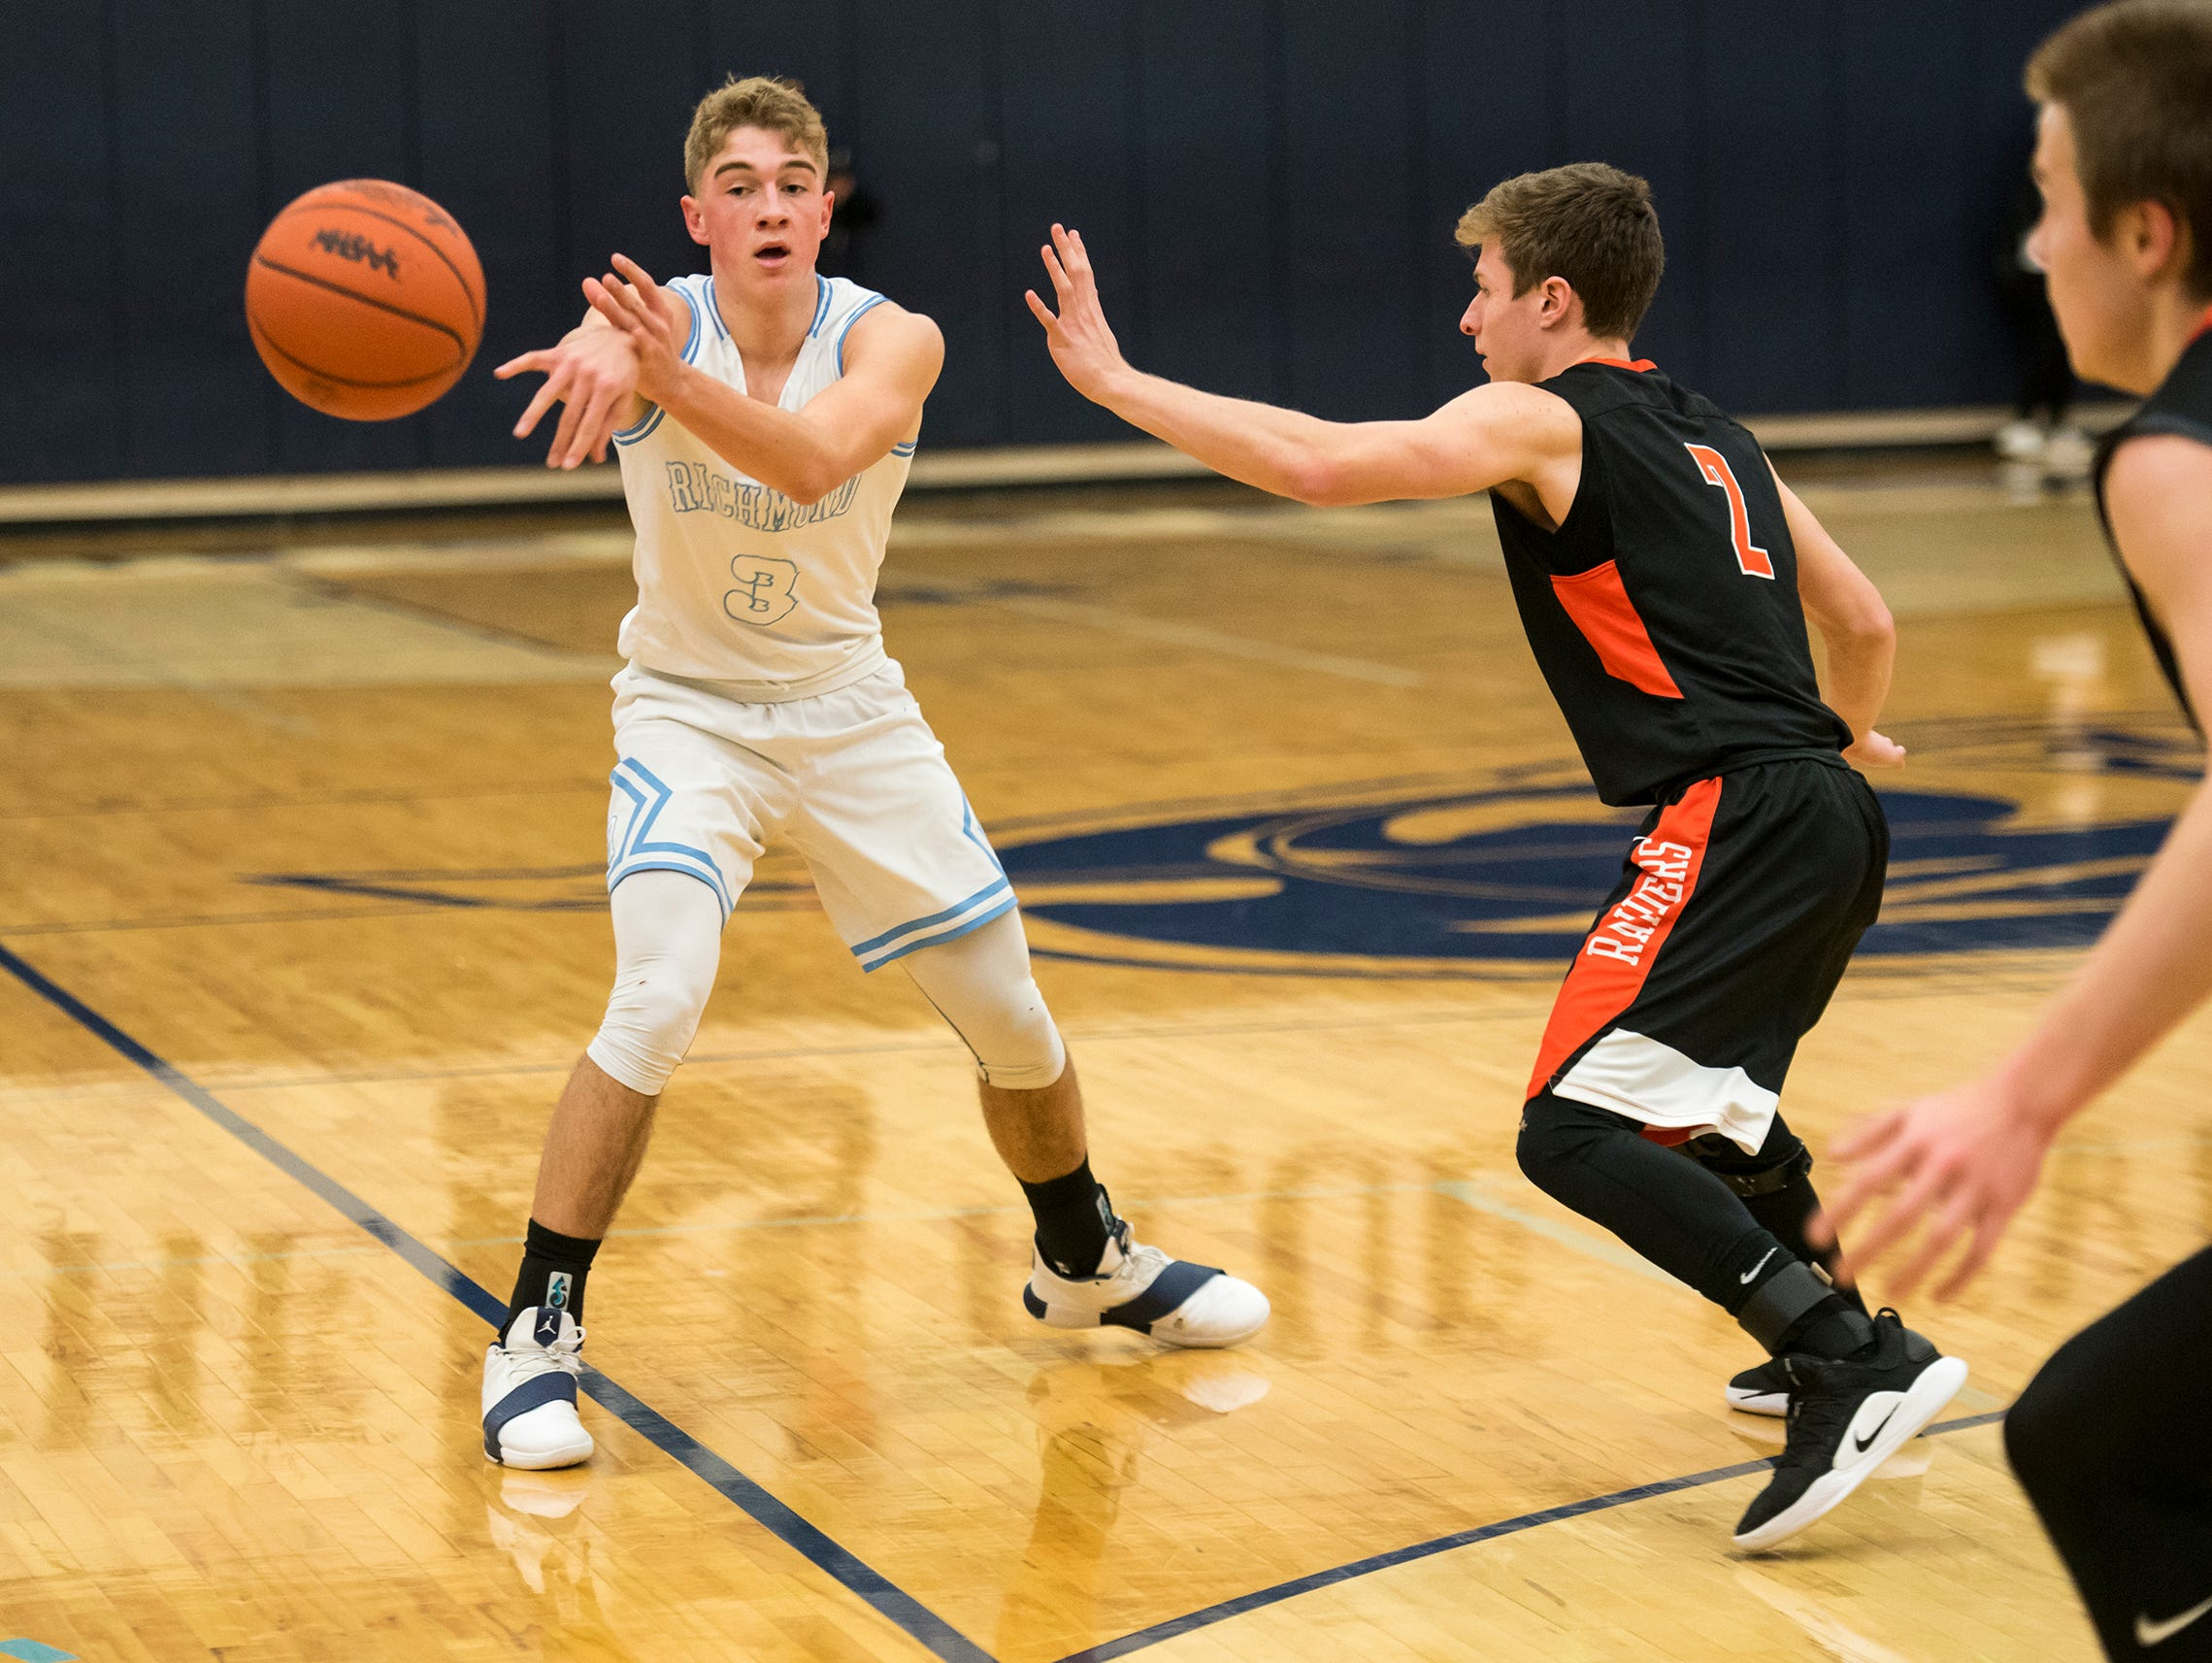 Richmond guard Jackson Allen (3) passes the ball away from Almont High School guard Cameron Asaro during their basketball game Friday, Feb. 15, 2019 at Richmond High School.